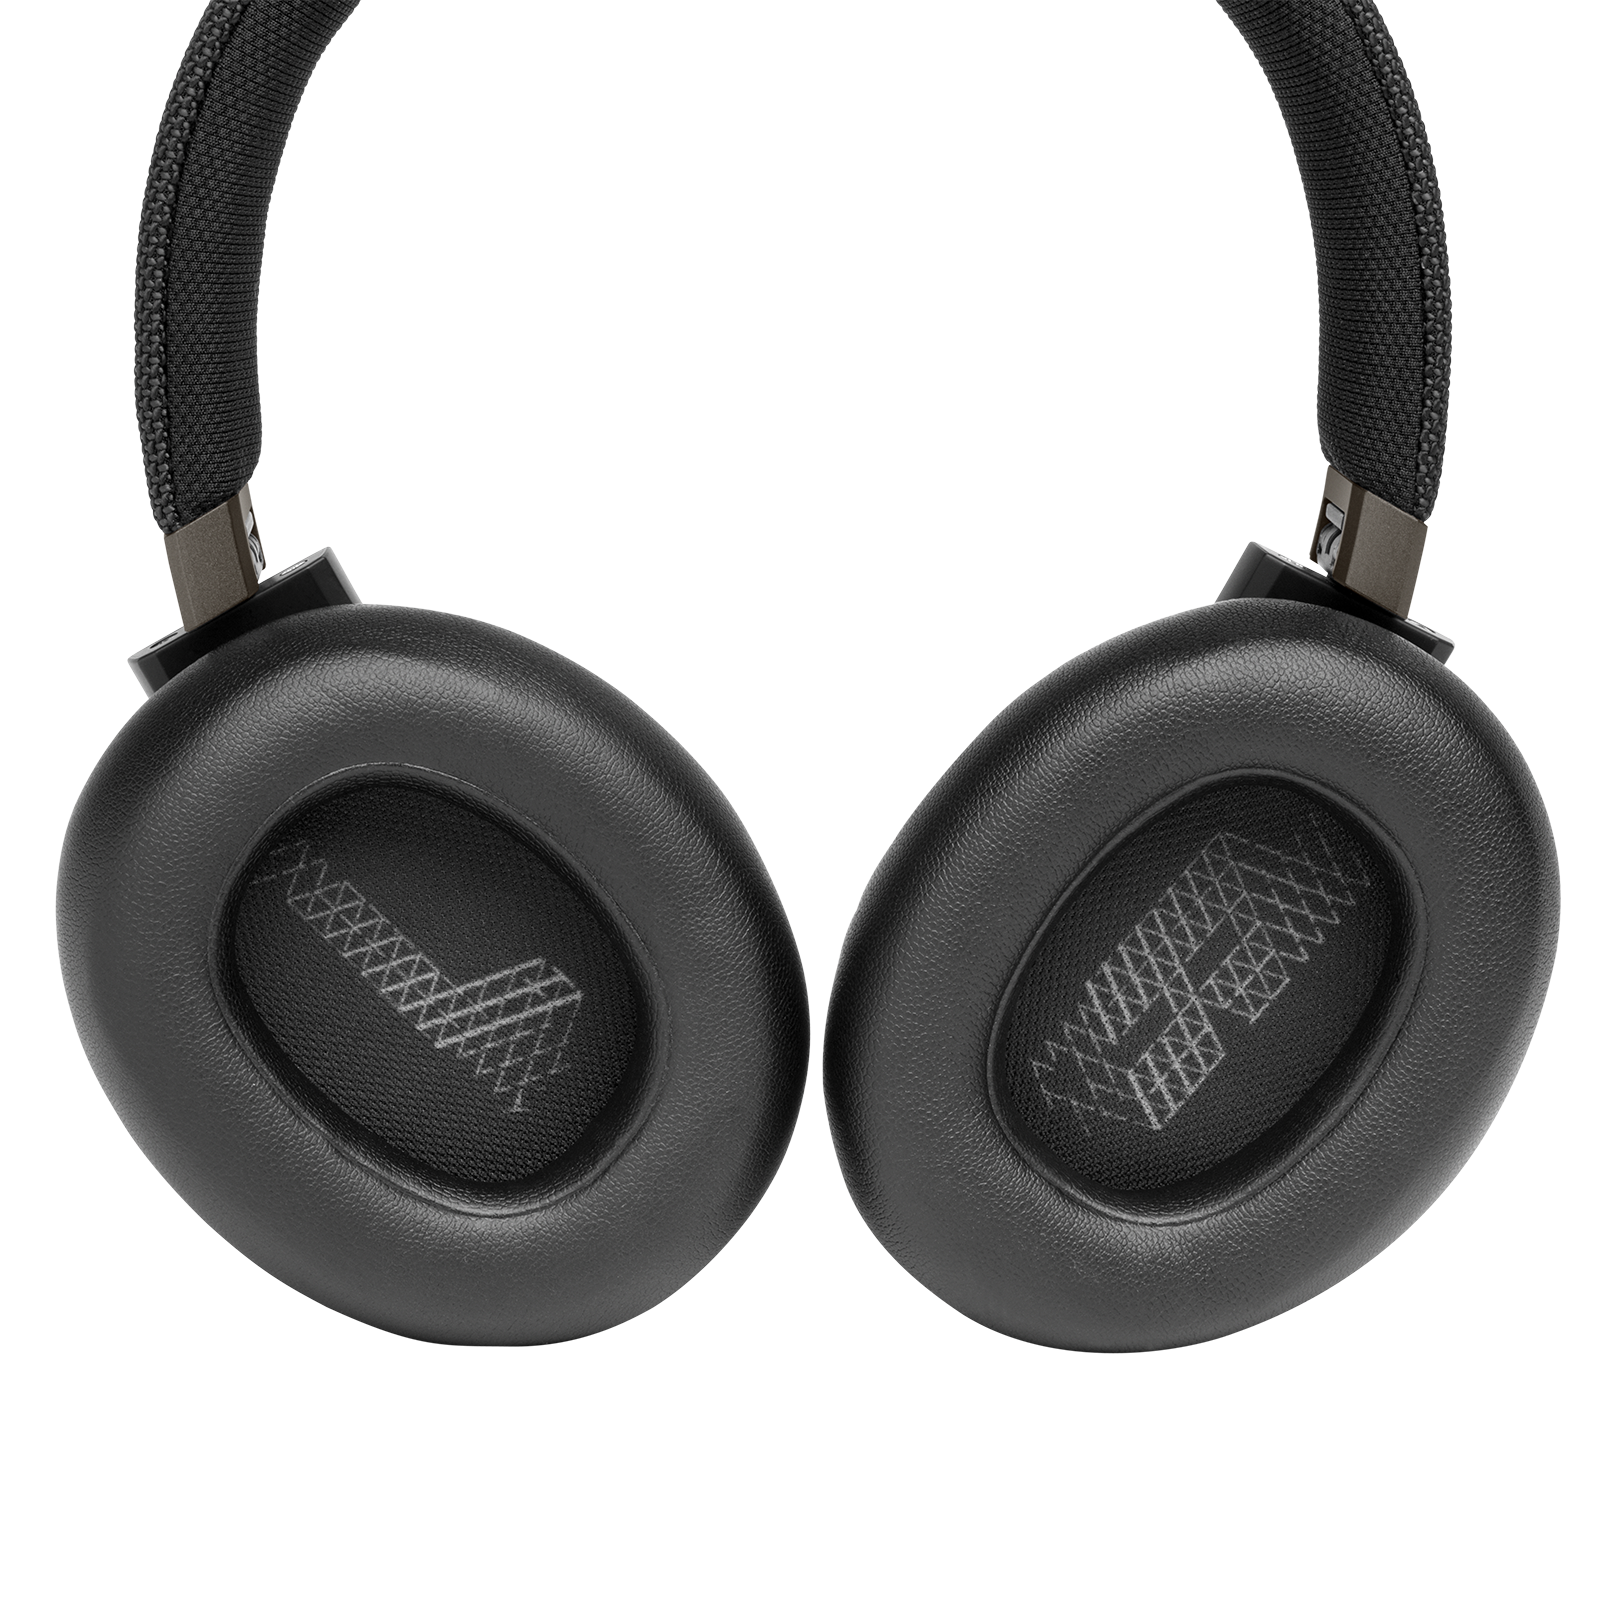 JBL LIVE 650BTNC - Black - Wireless Over-Ear Noise-Cancelling Headphones - Detailshot 3